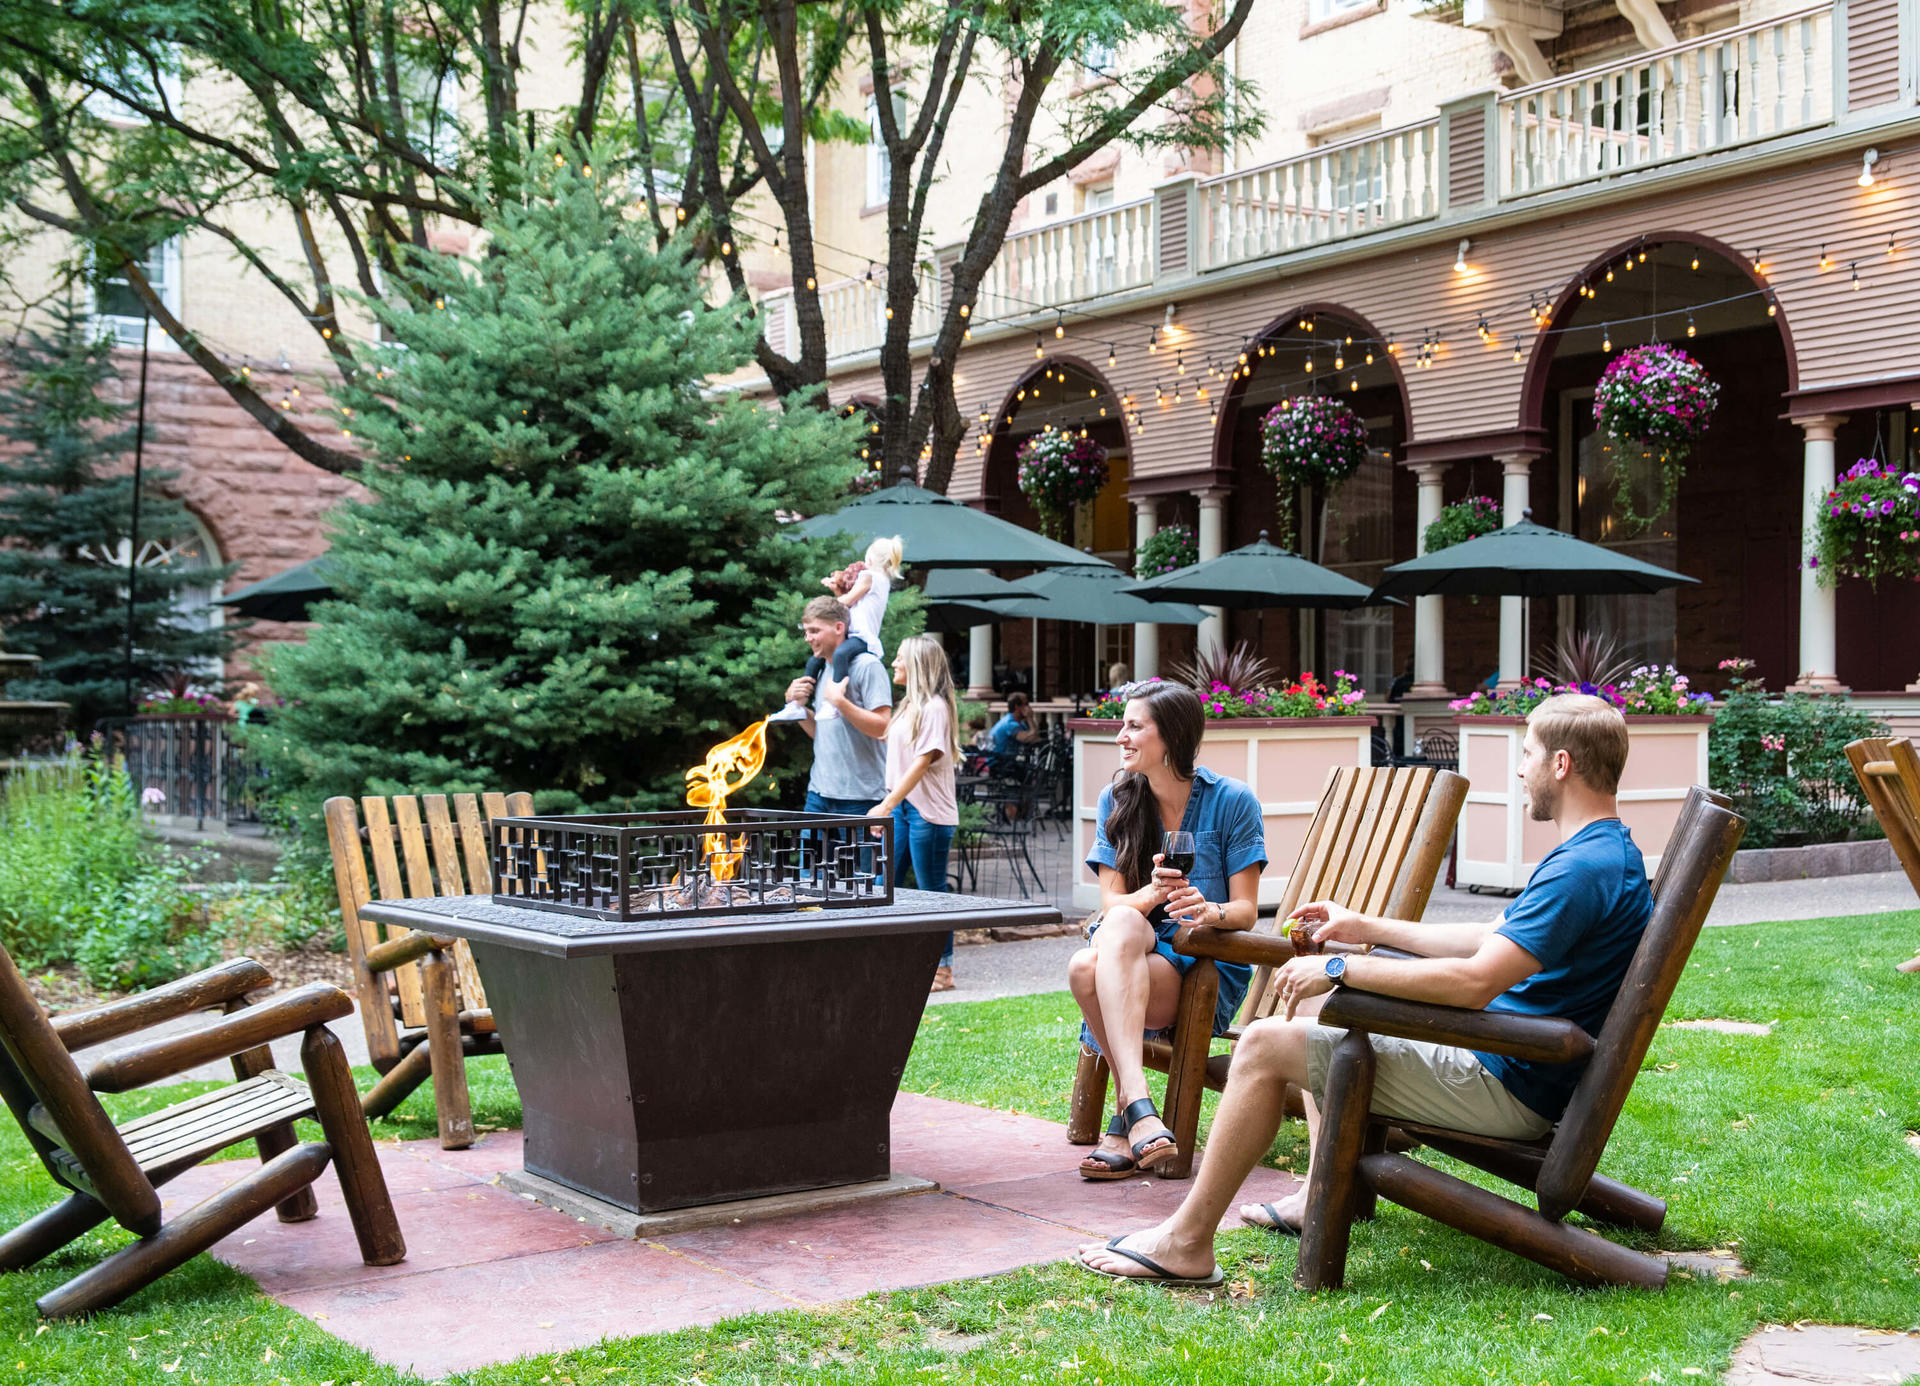 Guests enjoying the Hotel Colorado courtyard